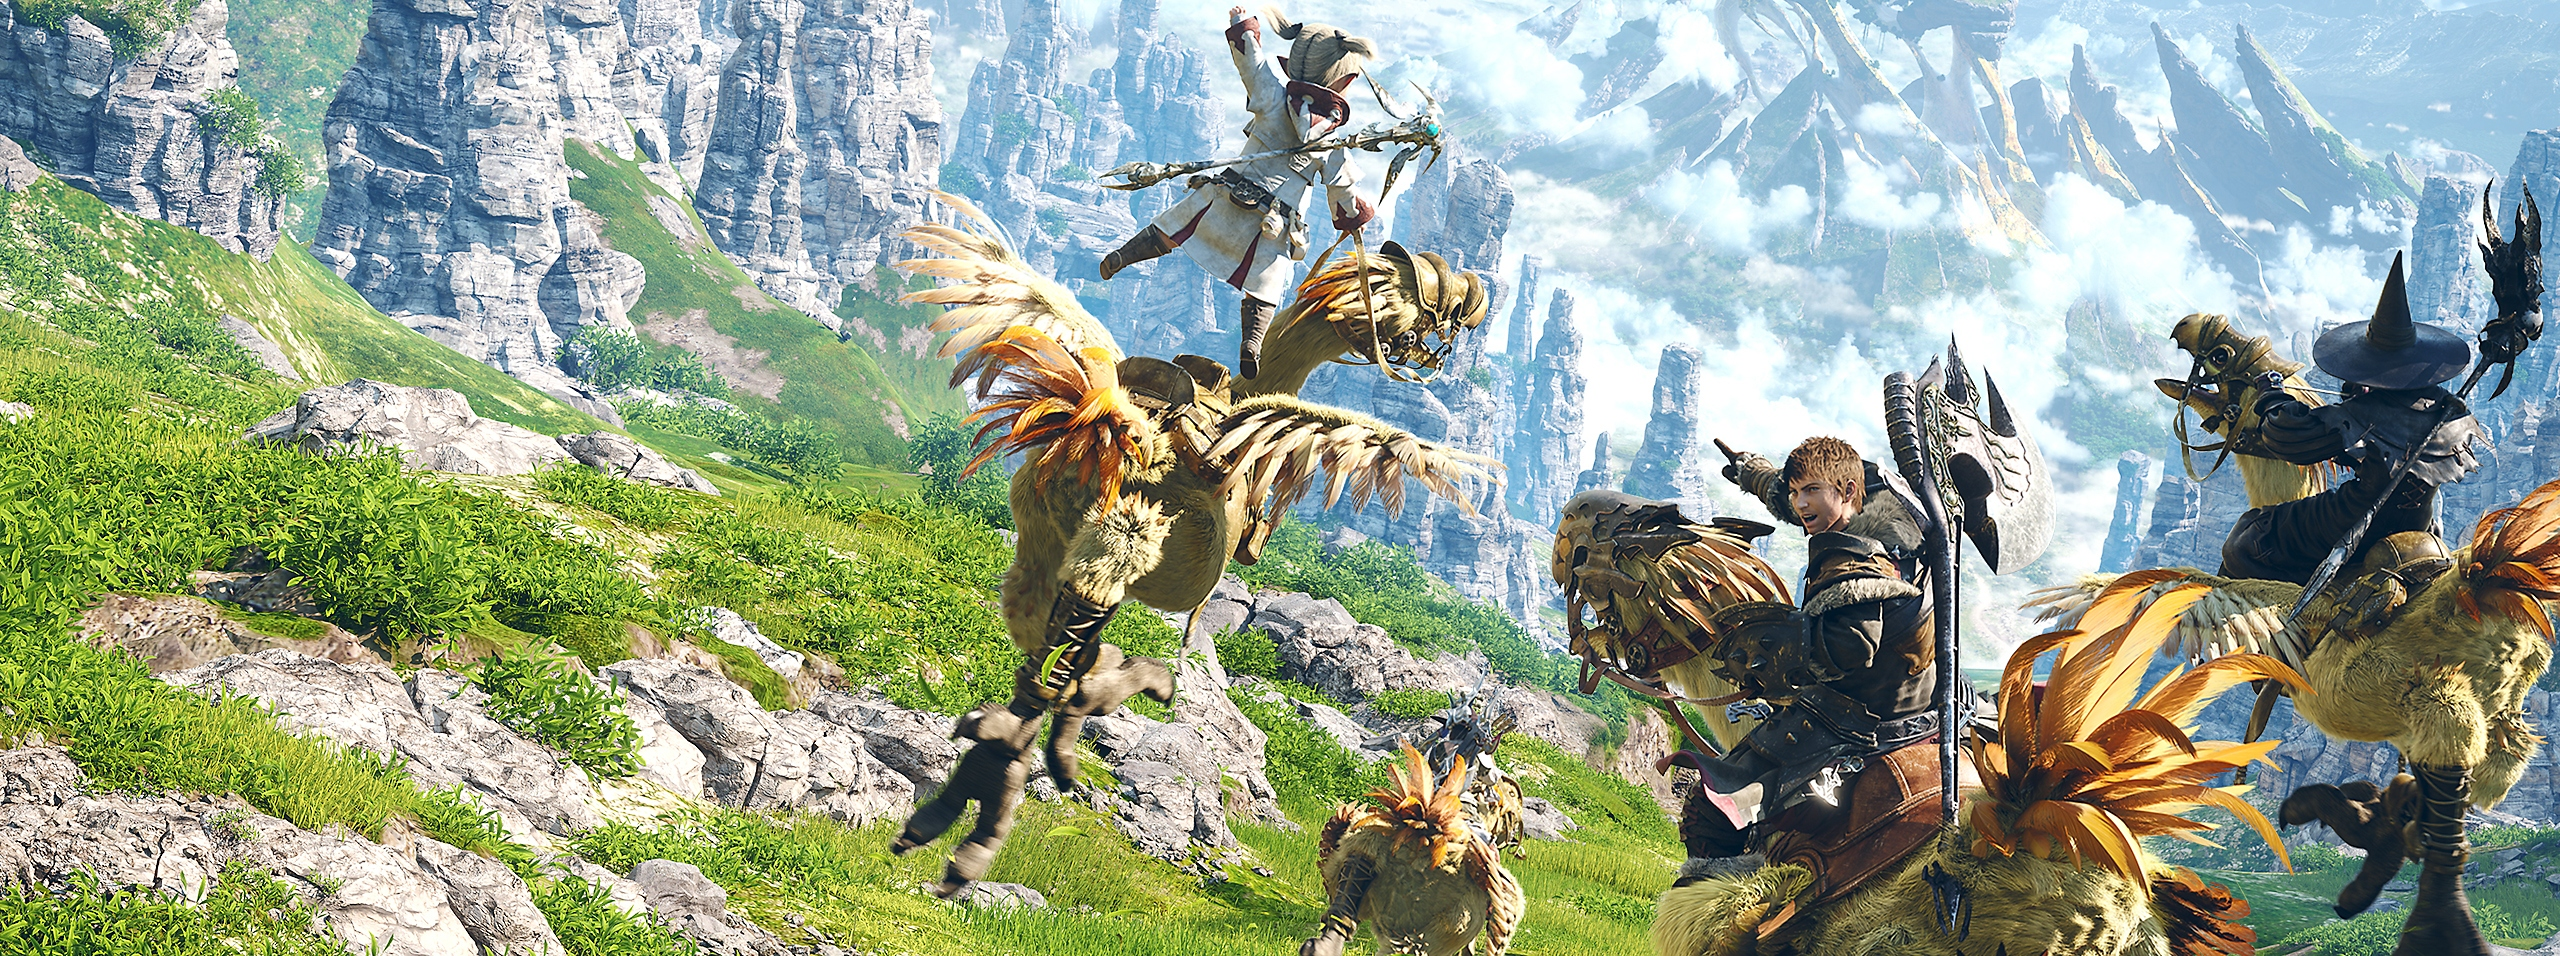 Final Fantasy XIV Online - Key Art